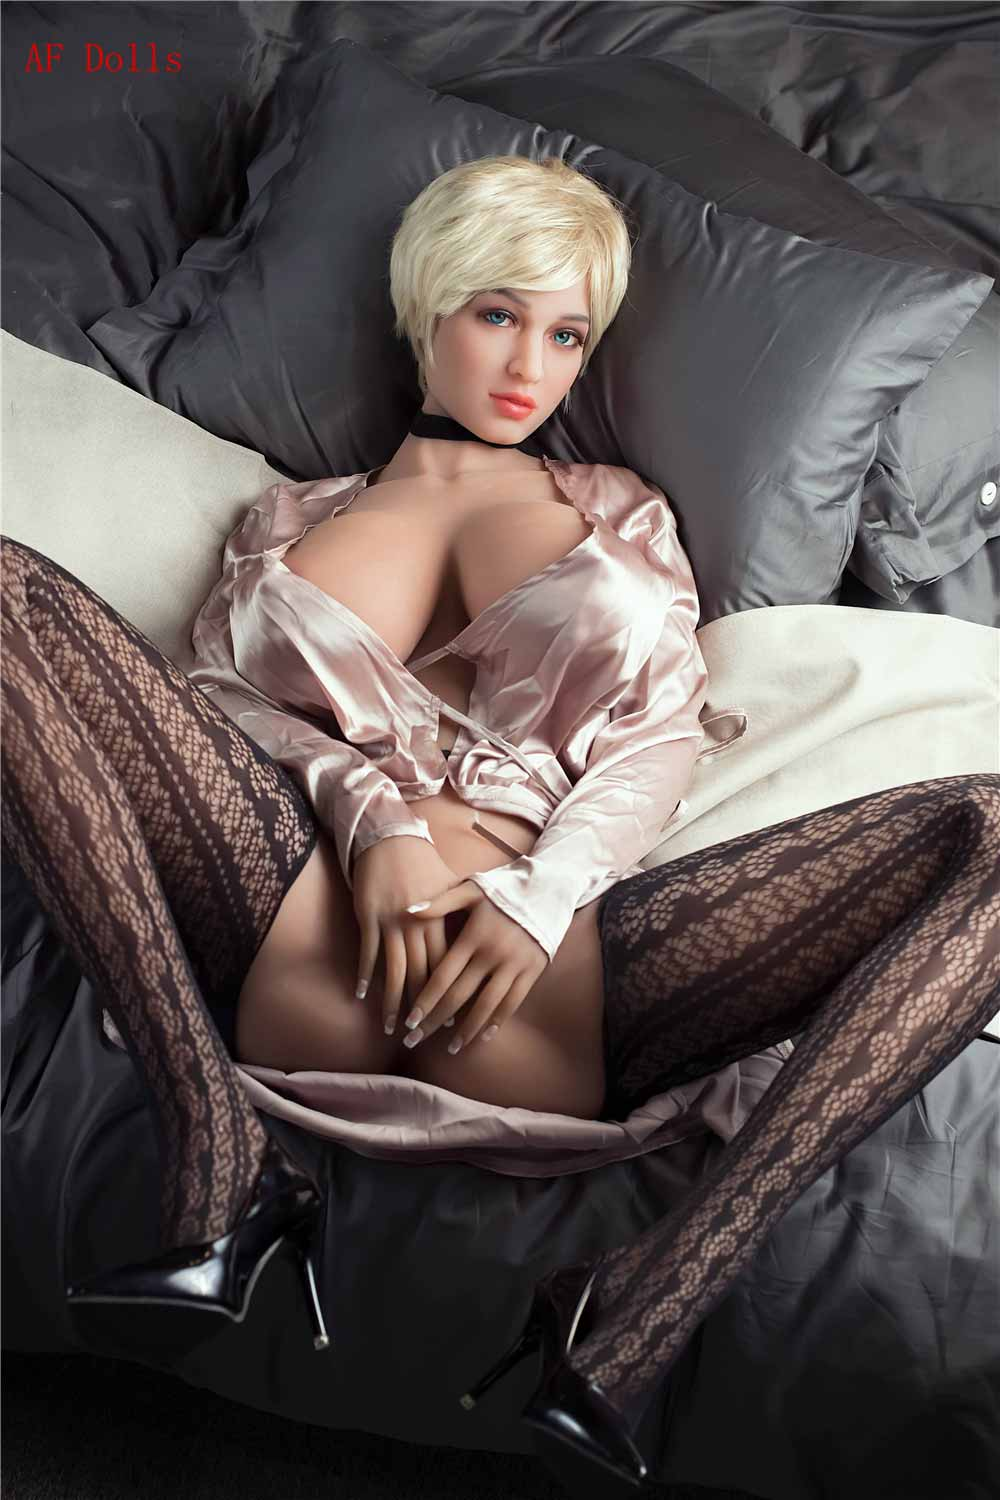 Big breasted sex doll with hands on lower body